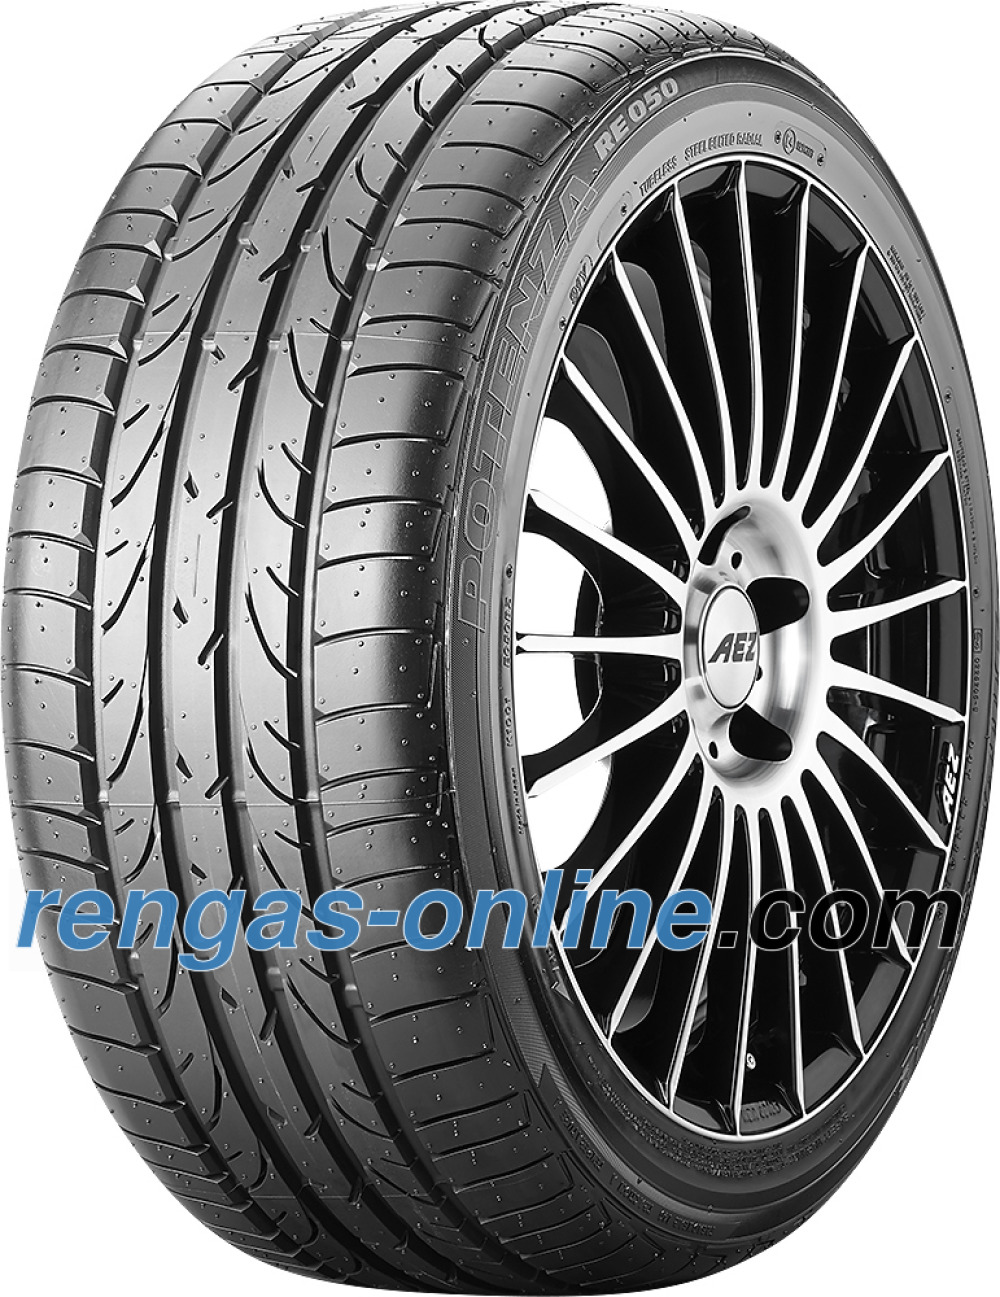 bridgestone-potenza-re-050-24545-r18-100y-xl-mo